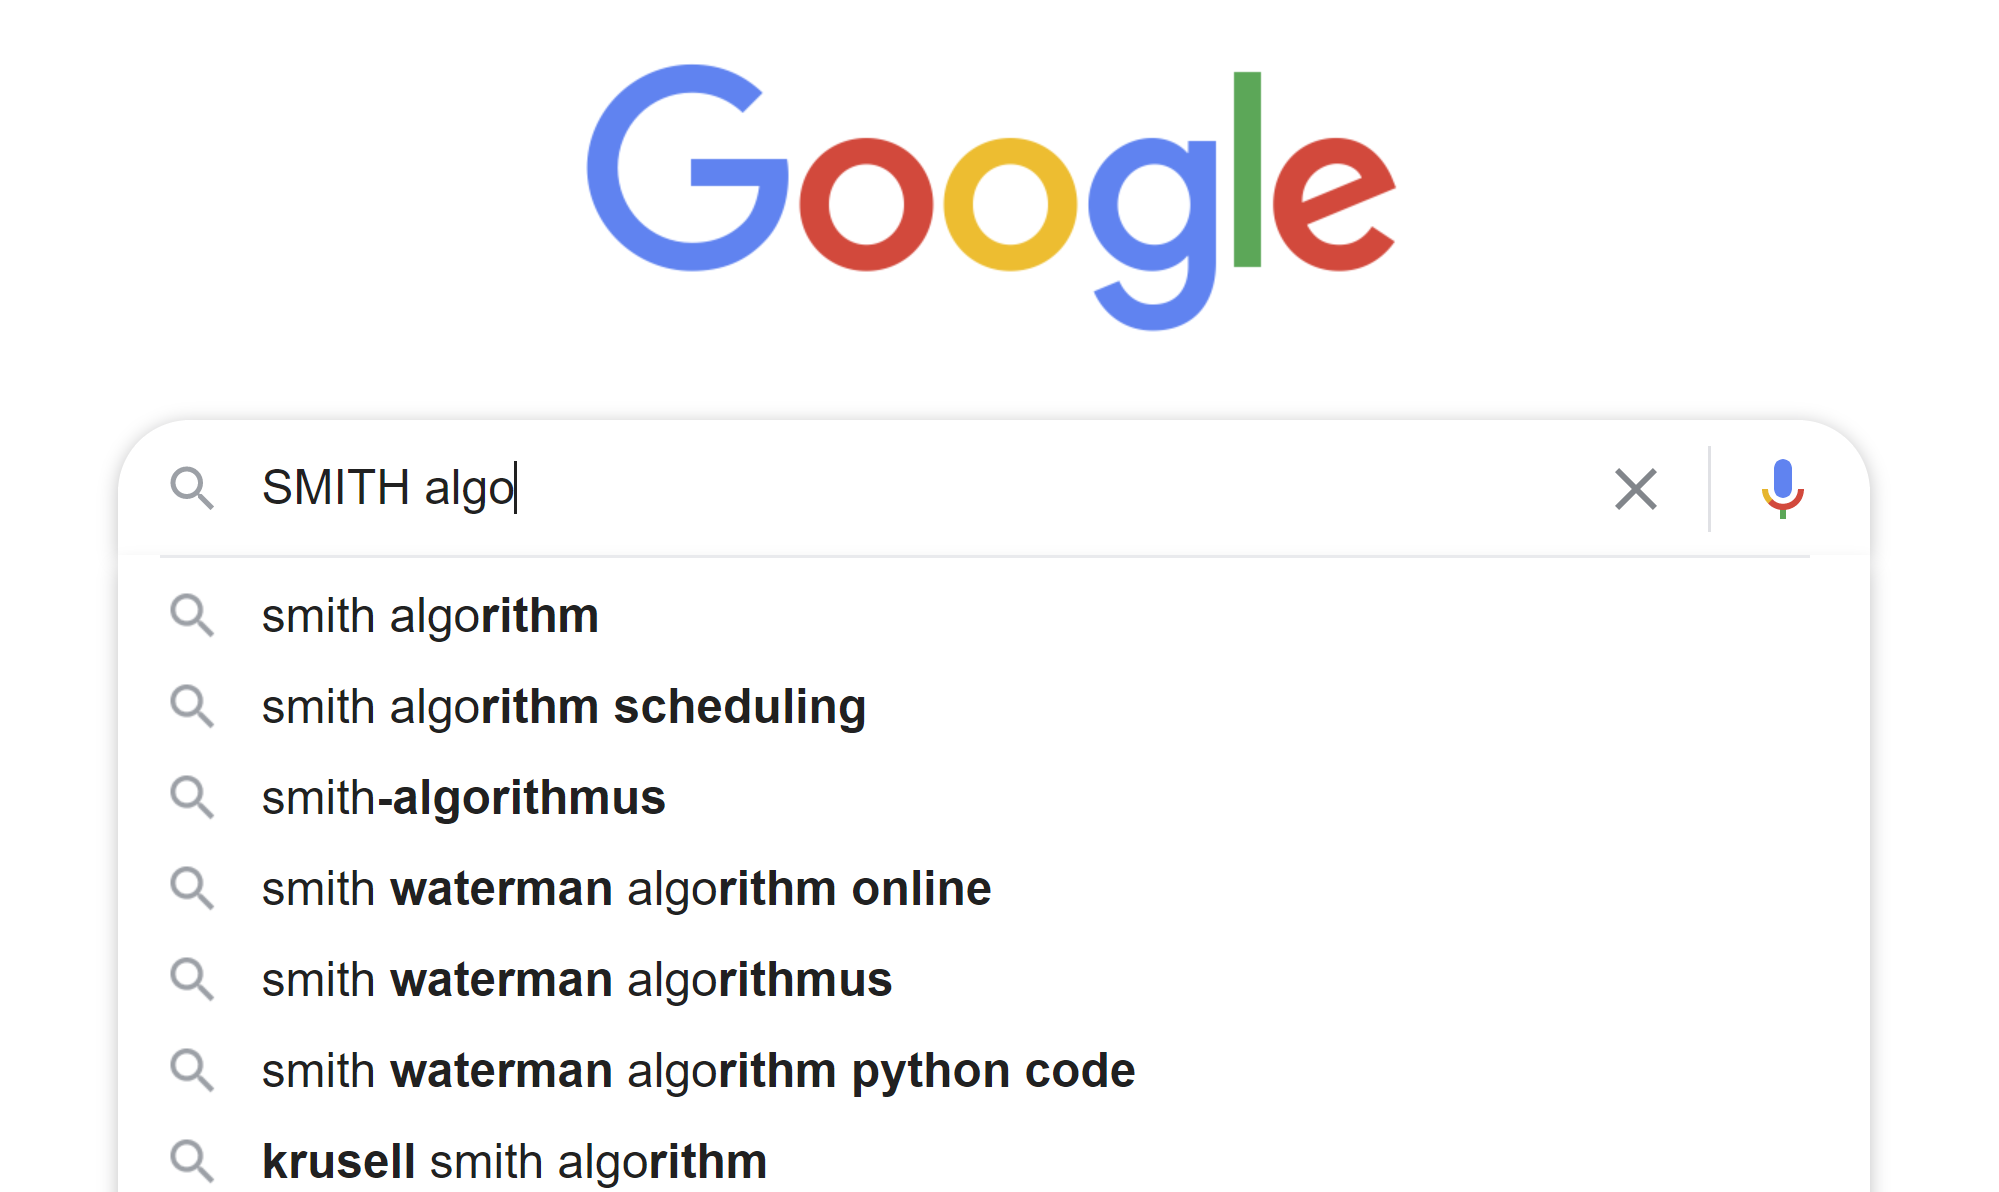 Google SMITH-Algorithms